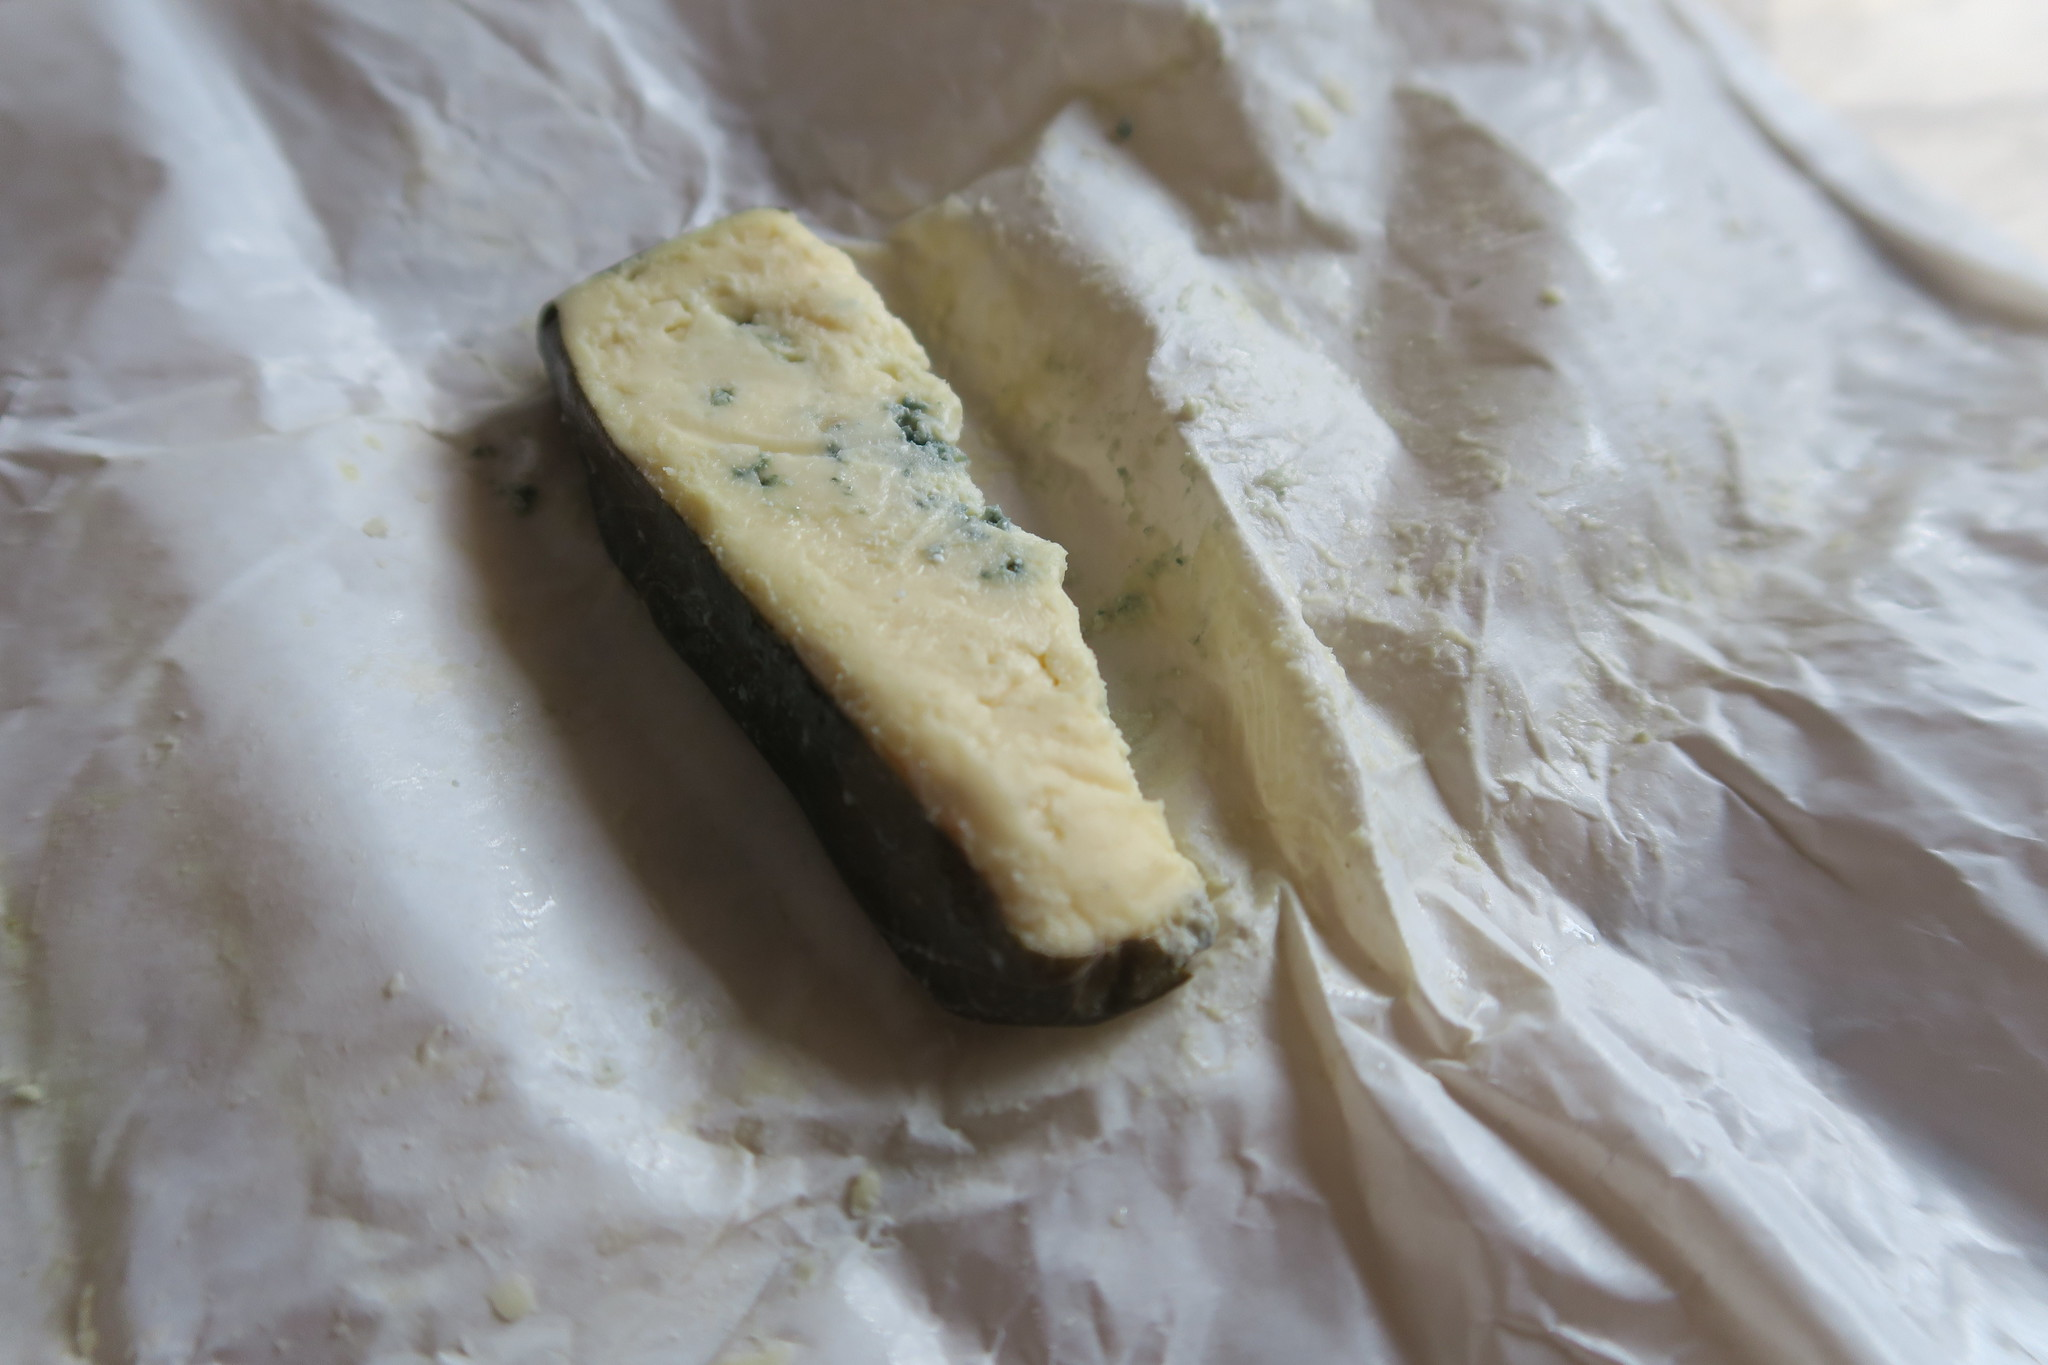 IMG_4321 Rogue River Blue cheese